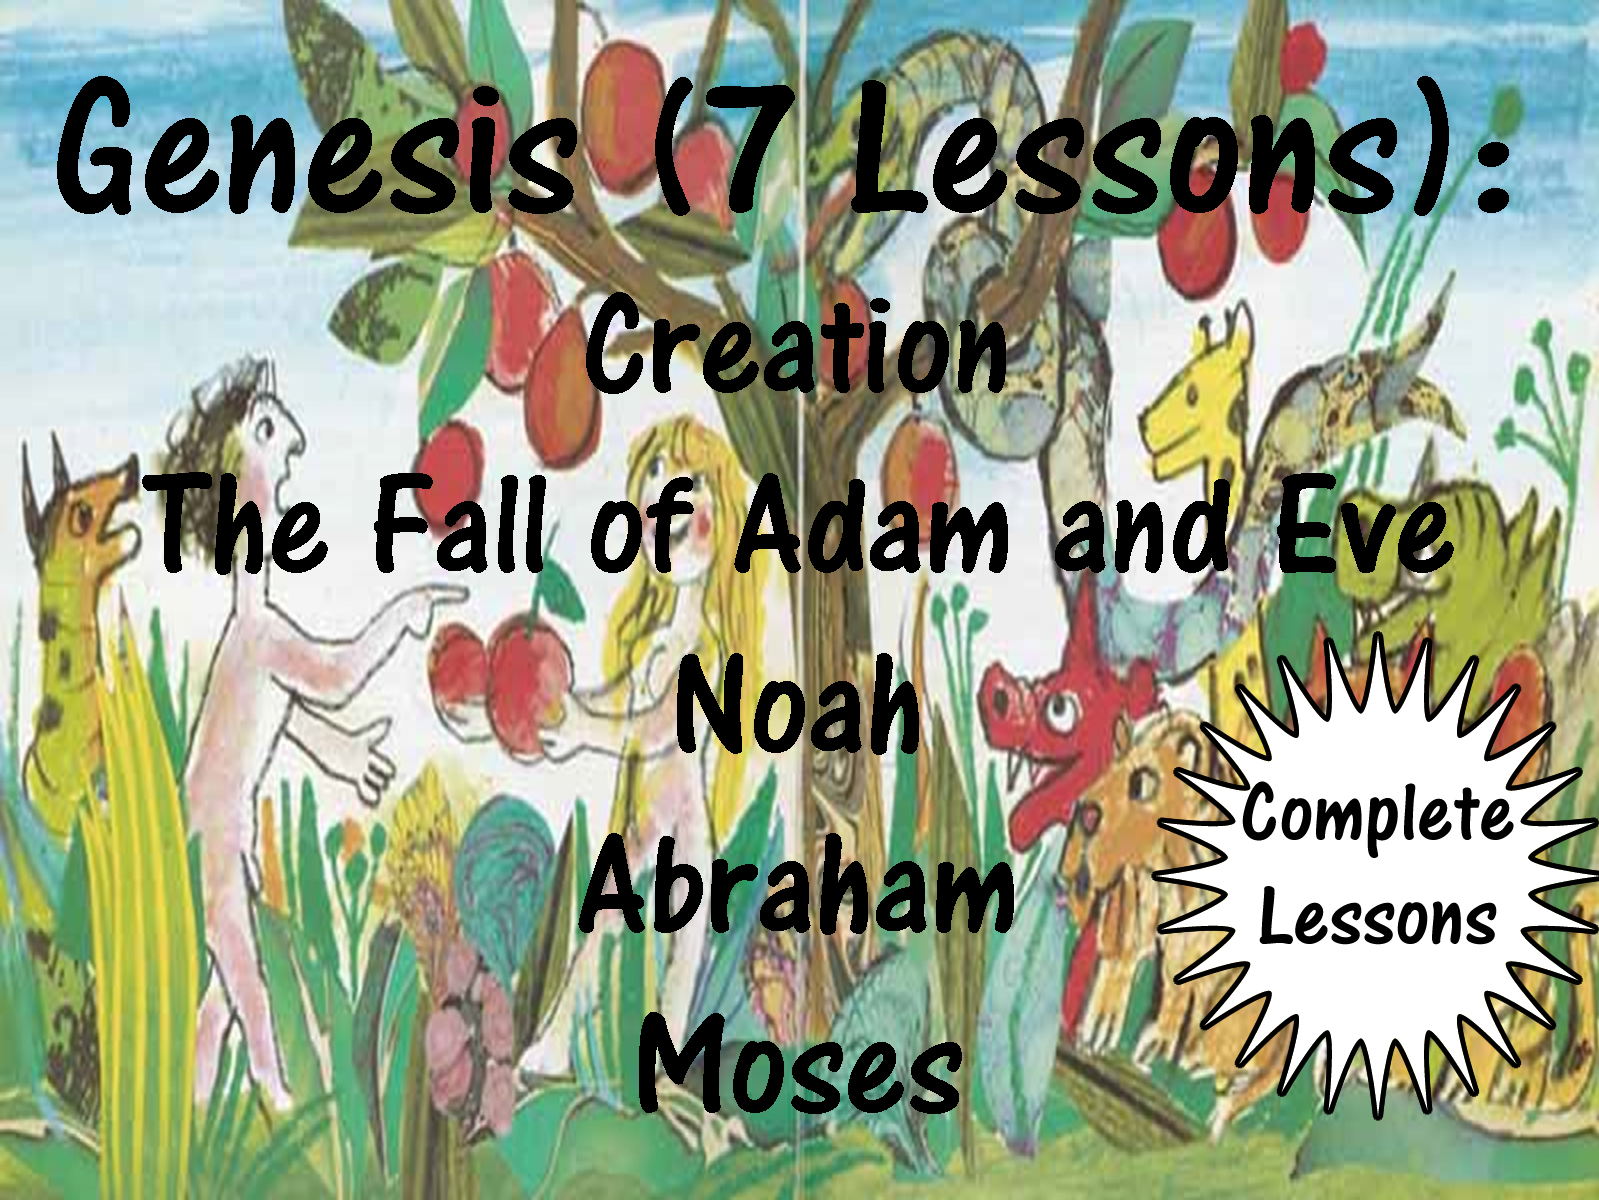 Genesis: Creation, The Fall of Adam and Eve, Noah, Abraham and Moses (7 Lessons)